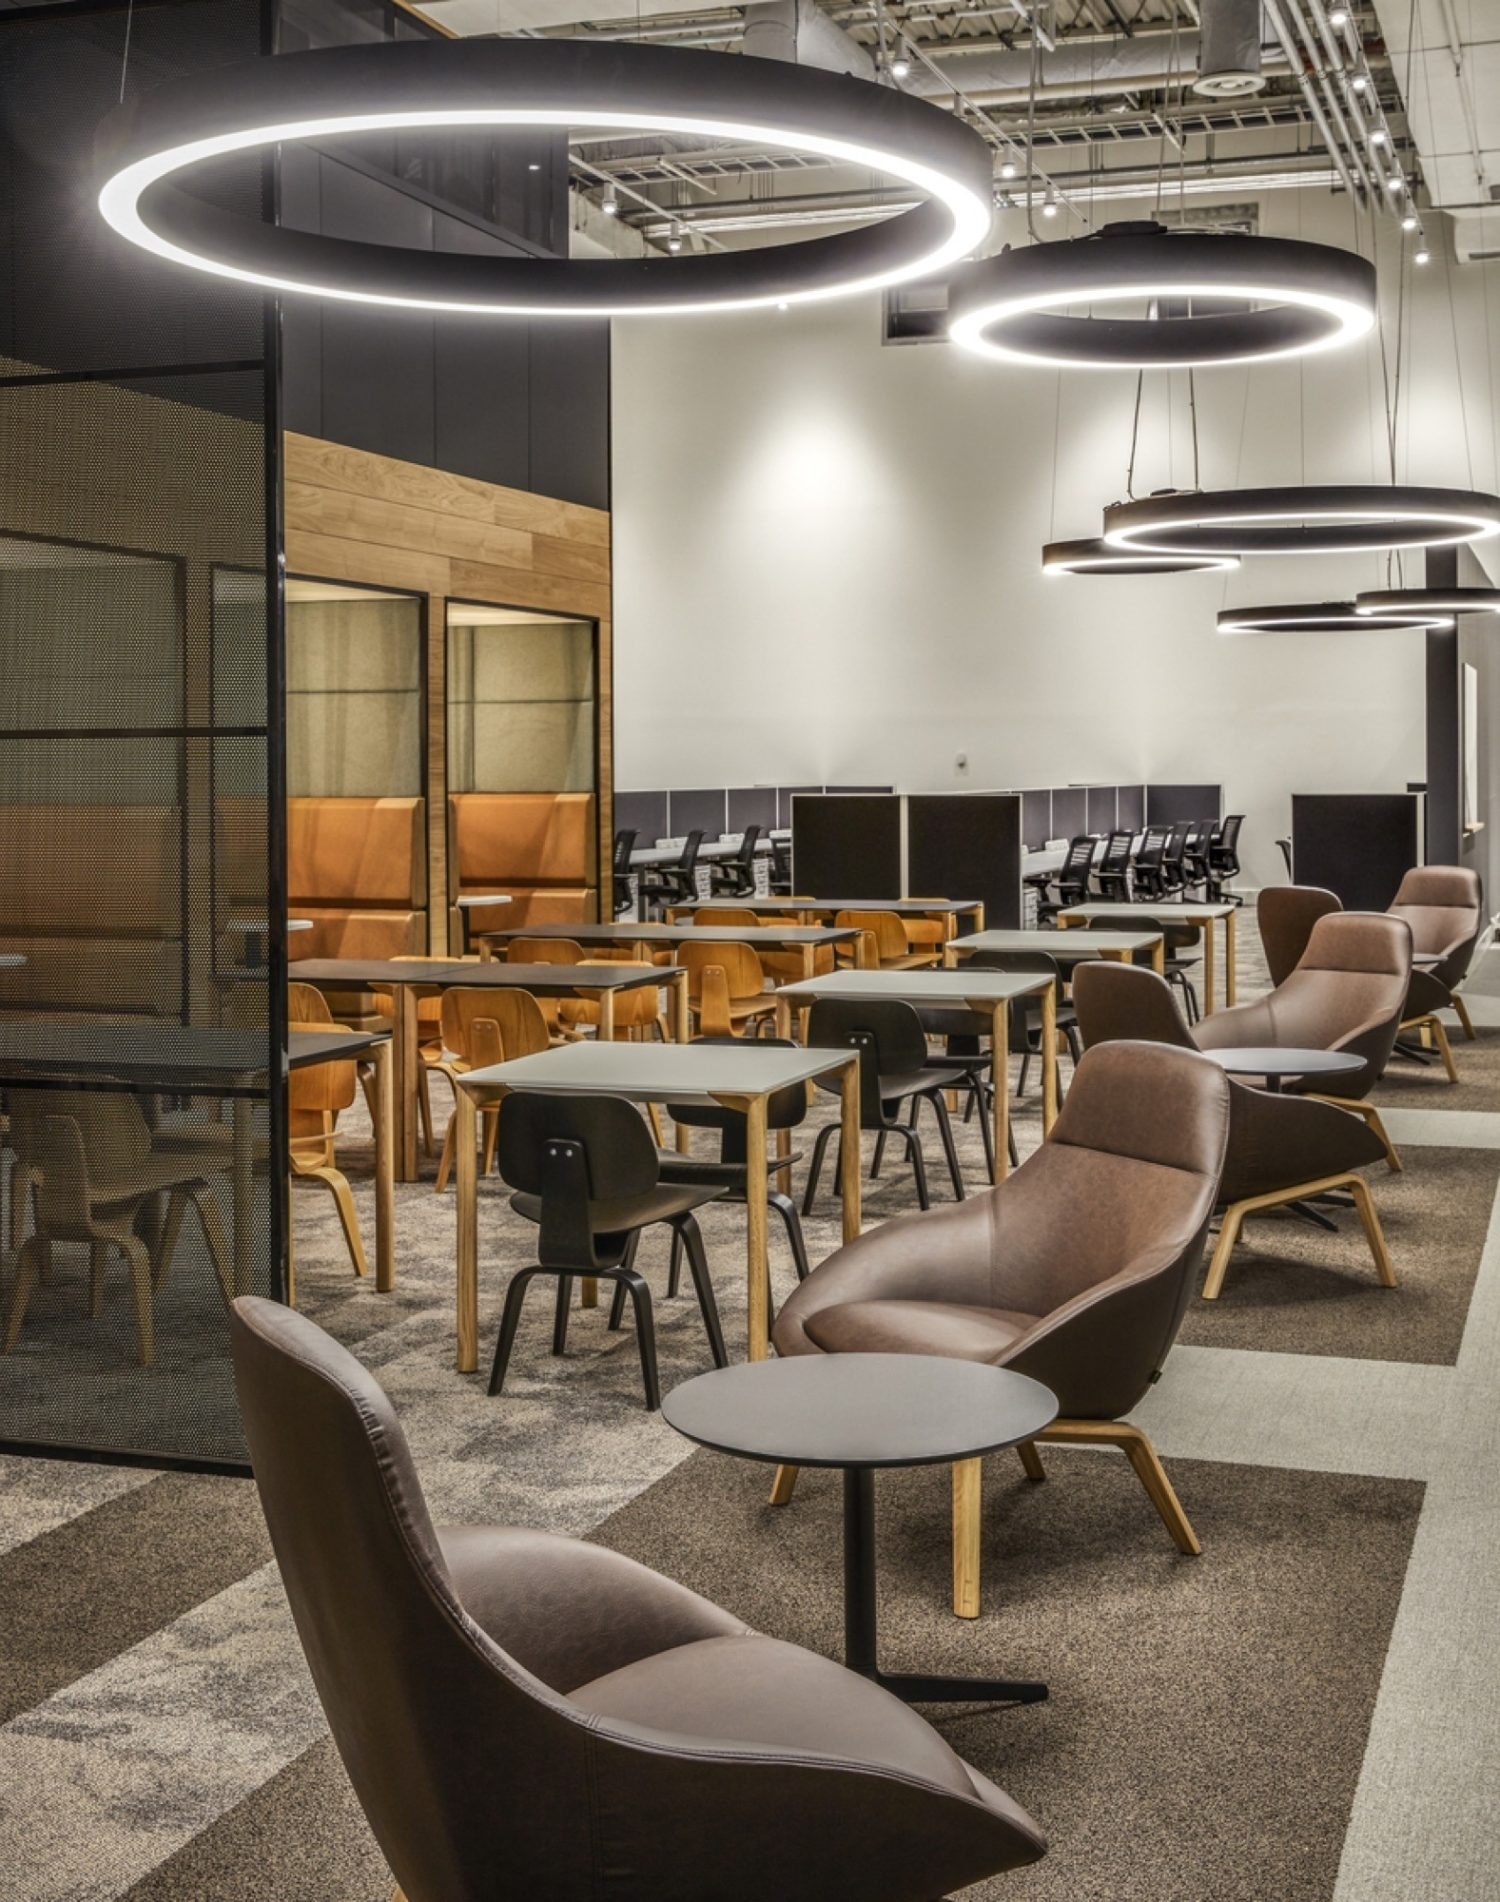 DXC communal space in office fit out